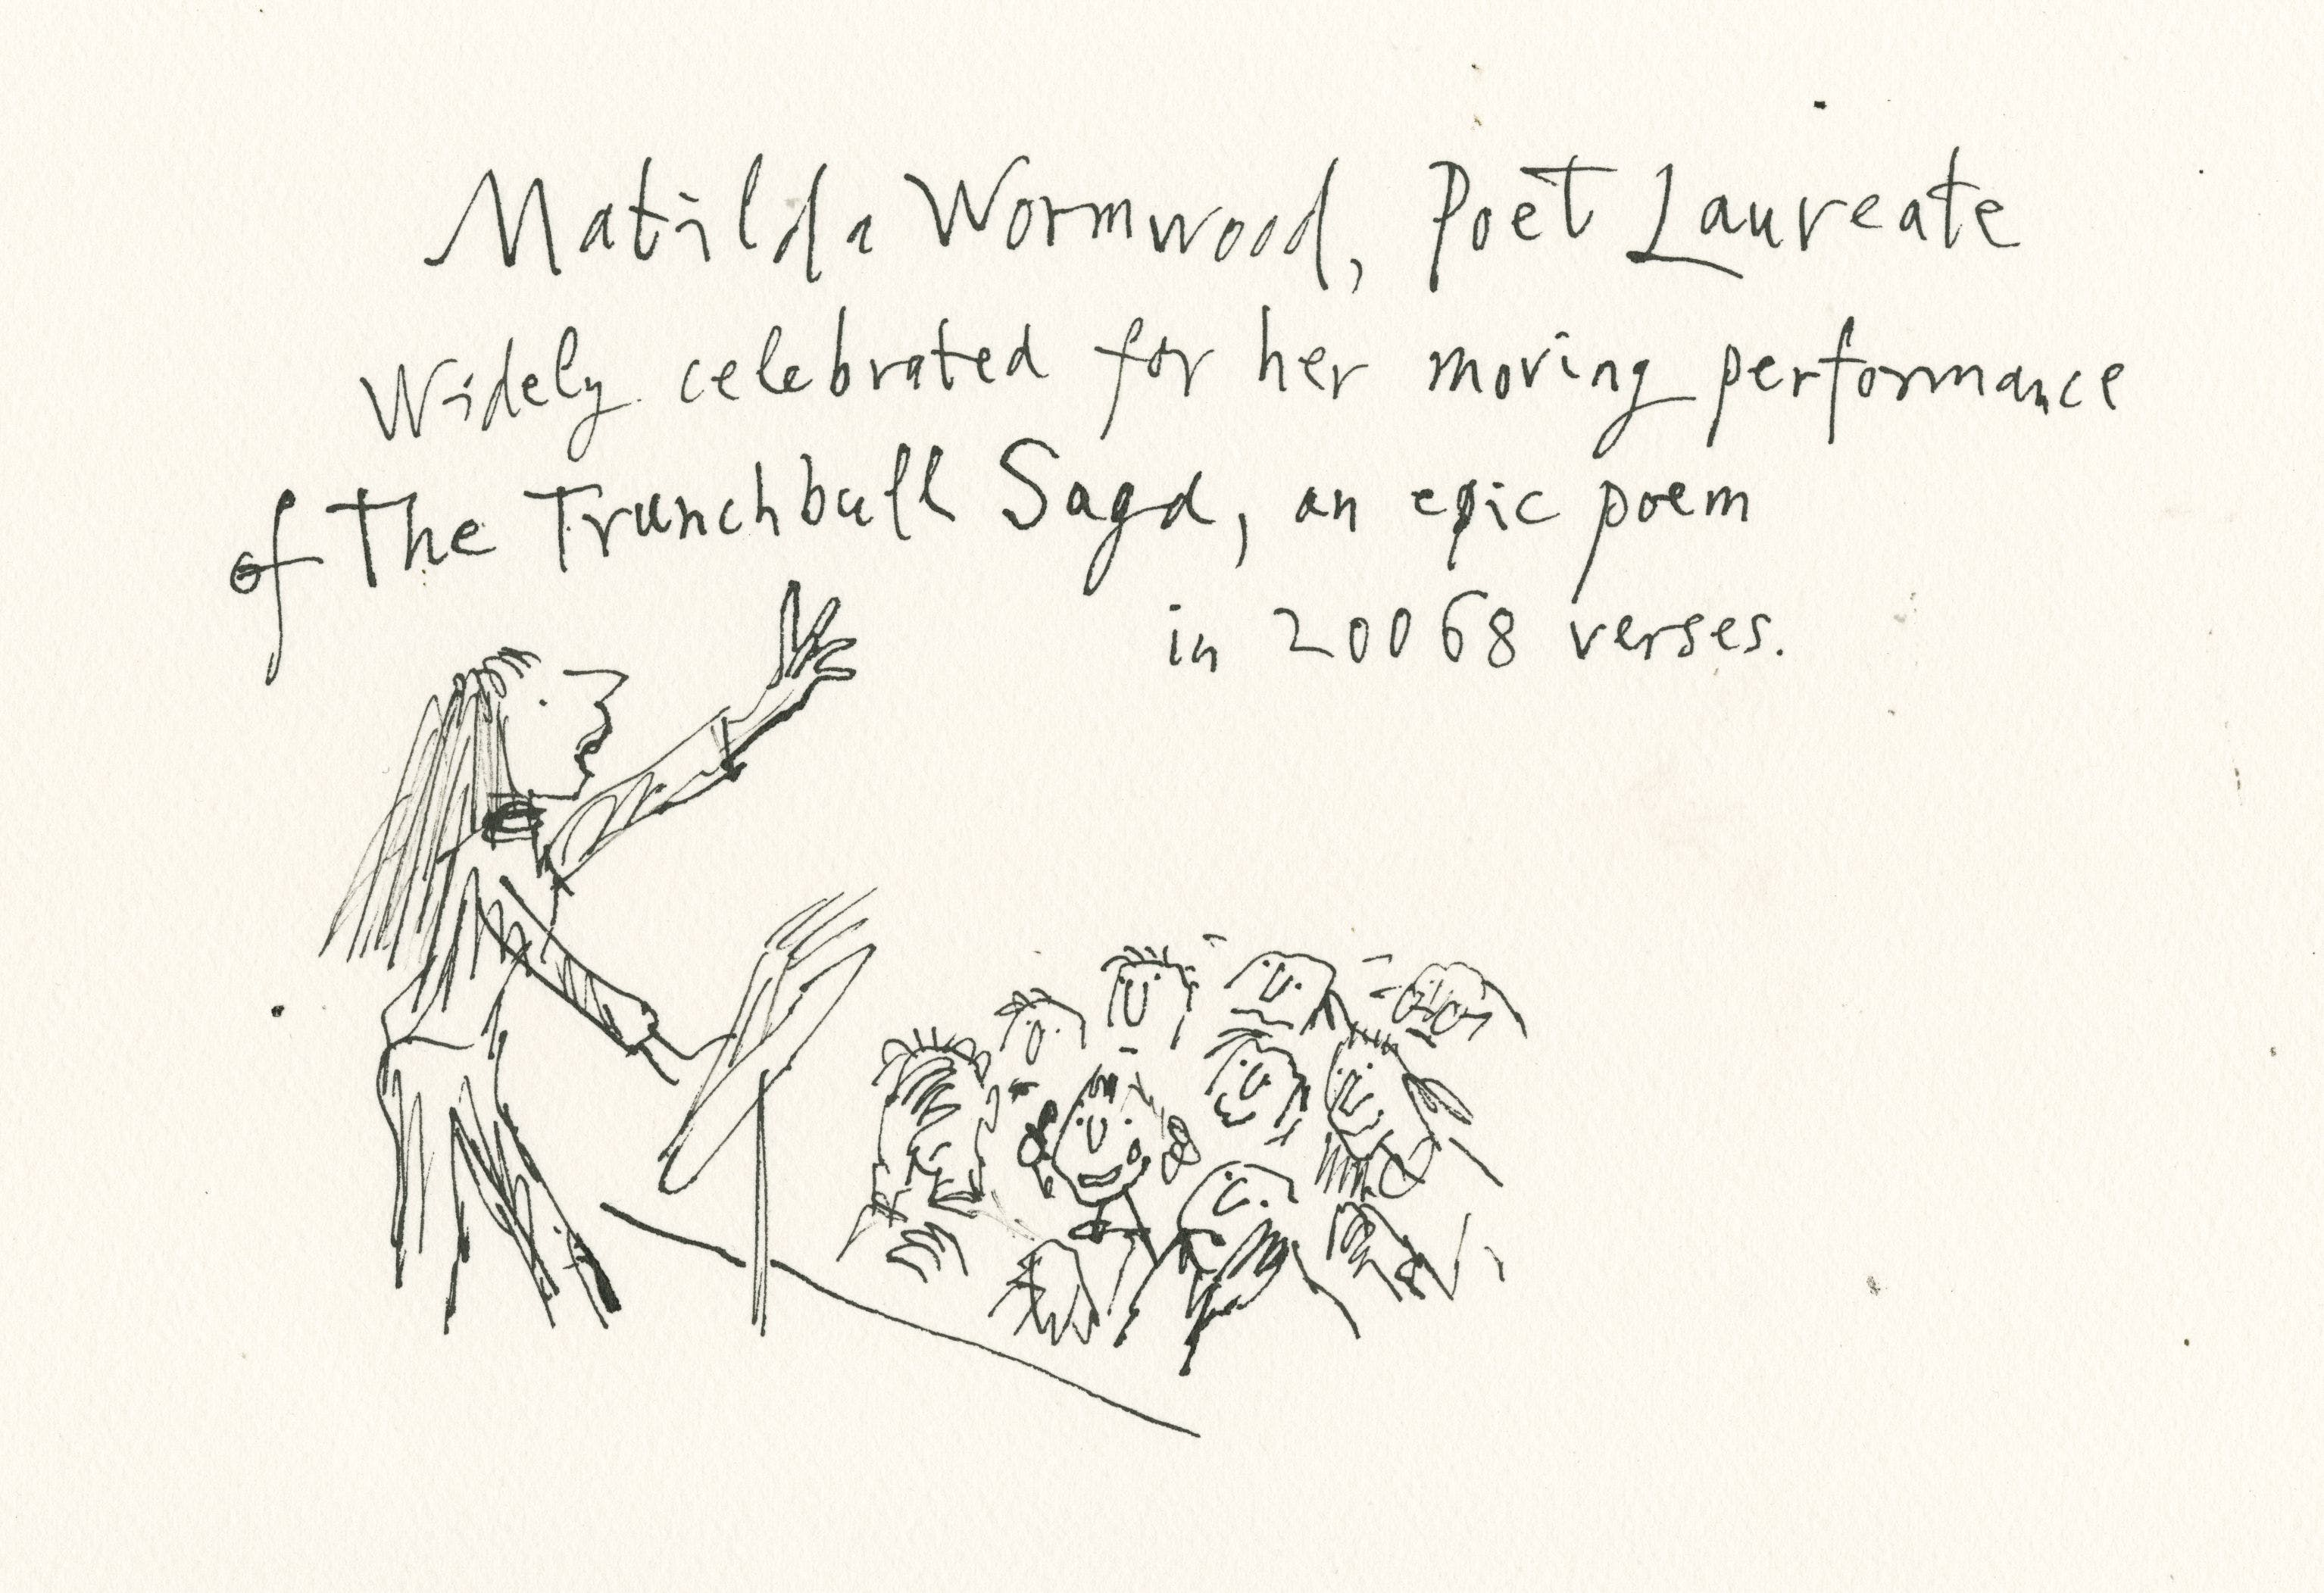 Matilda Wormwood as an astrophysicist, as imagined by Quentin Blake